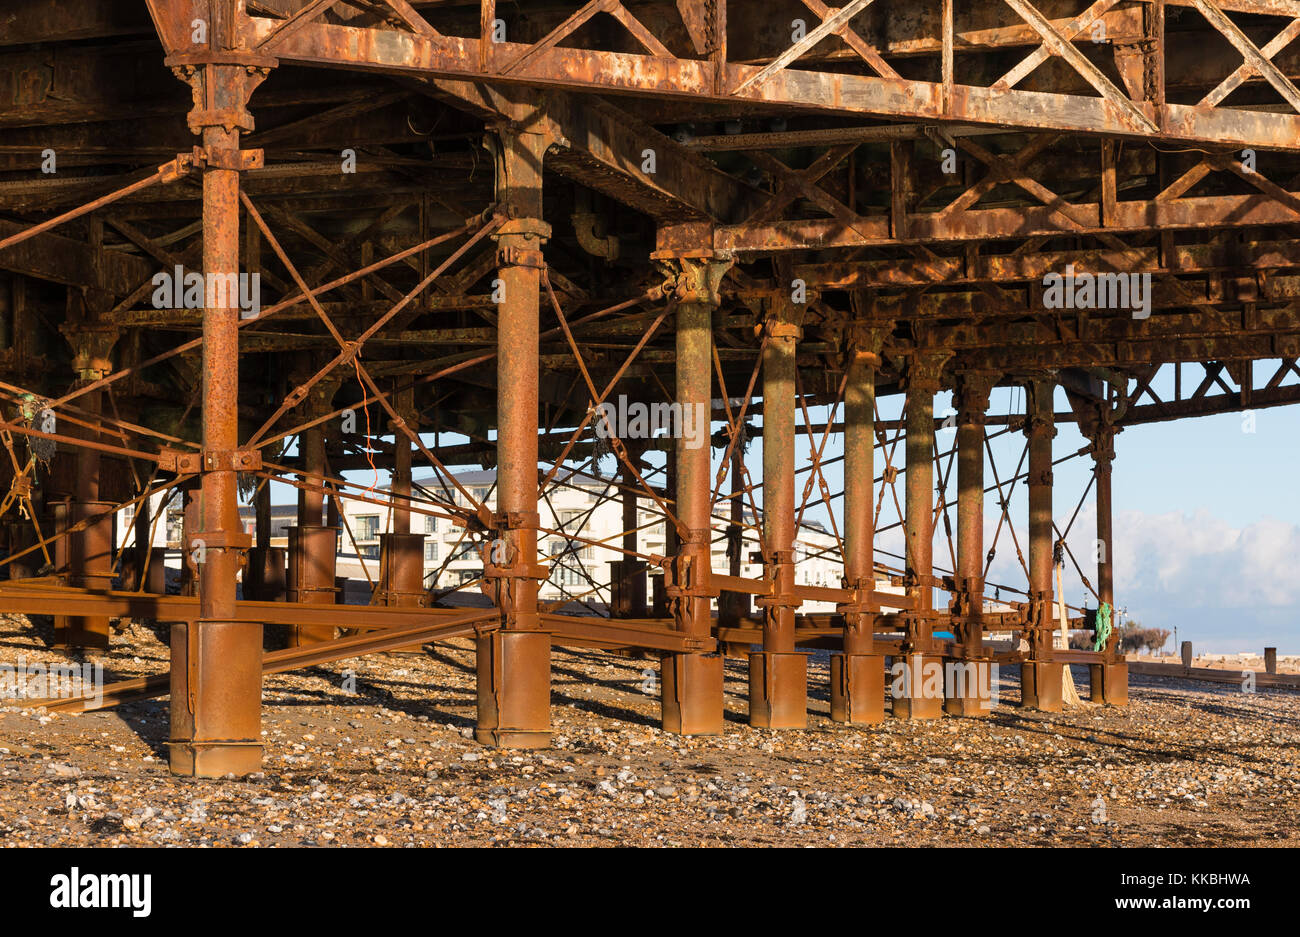 Rusting metal support struts on a pier, after corrosion by sea water. - Stock Image